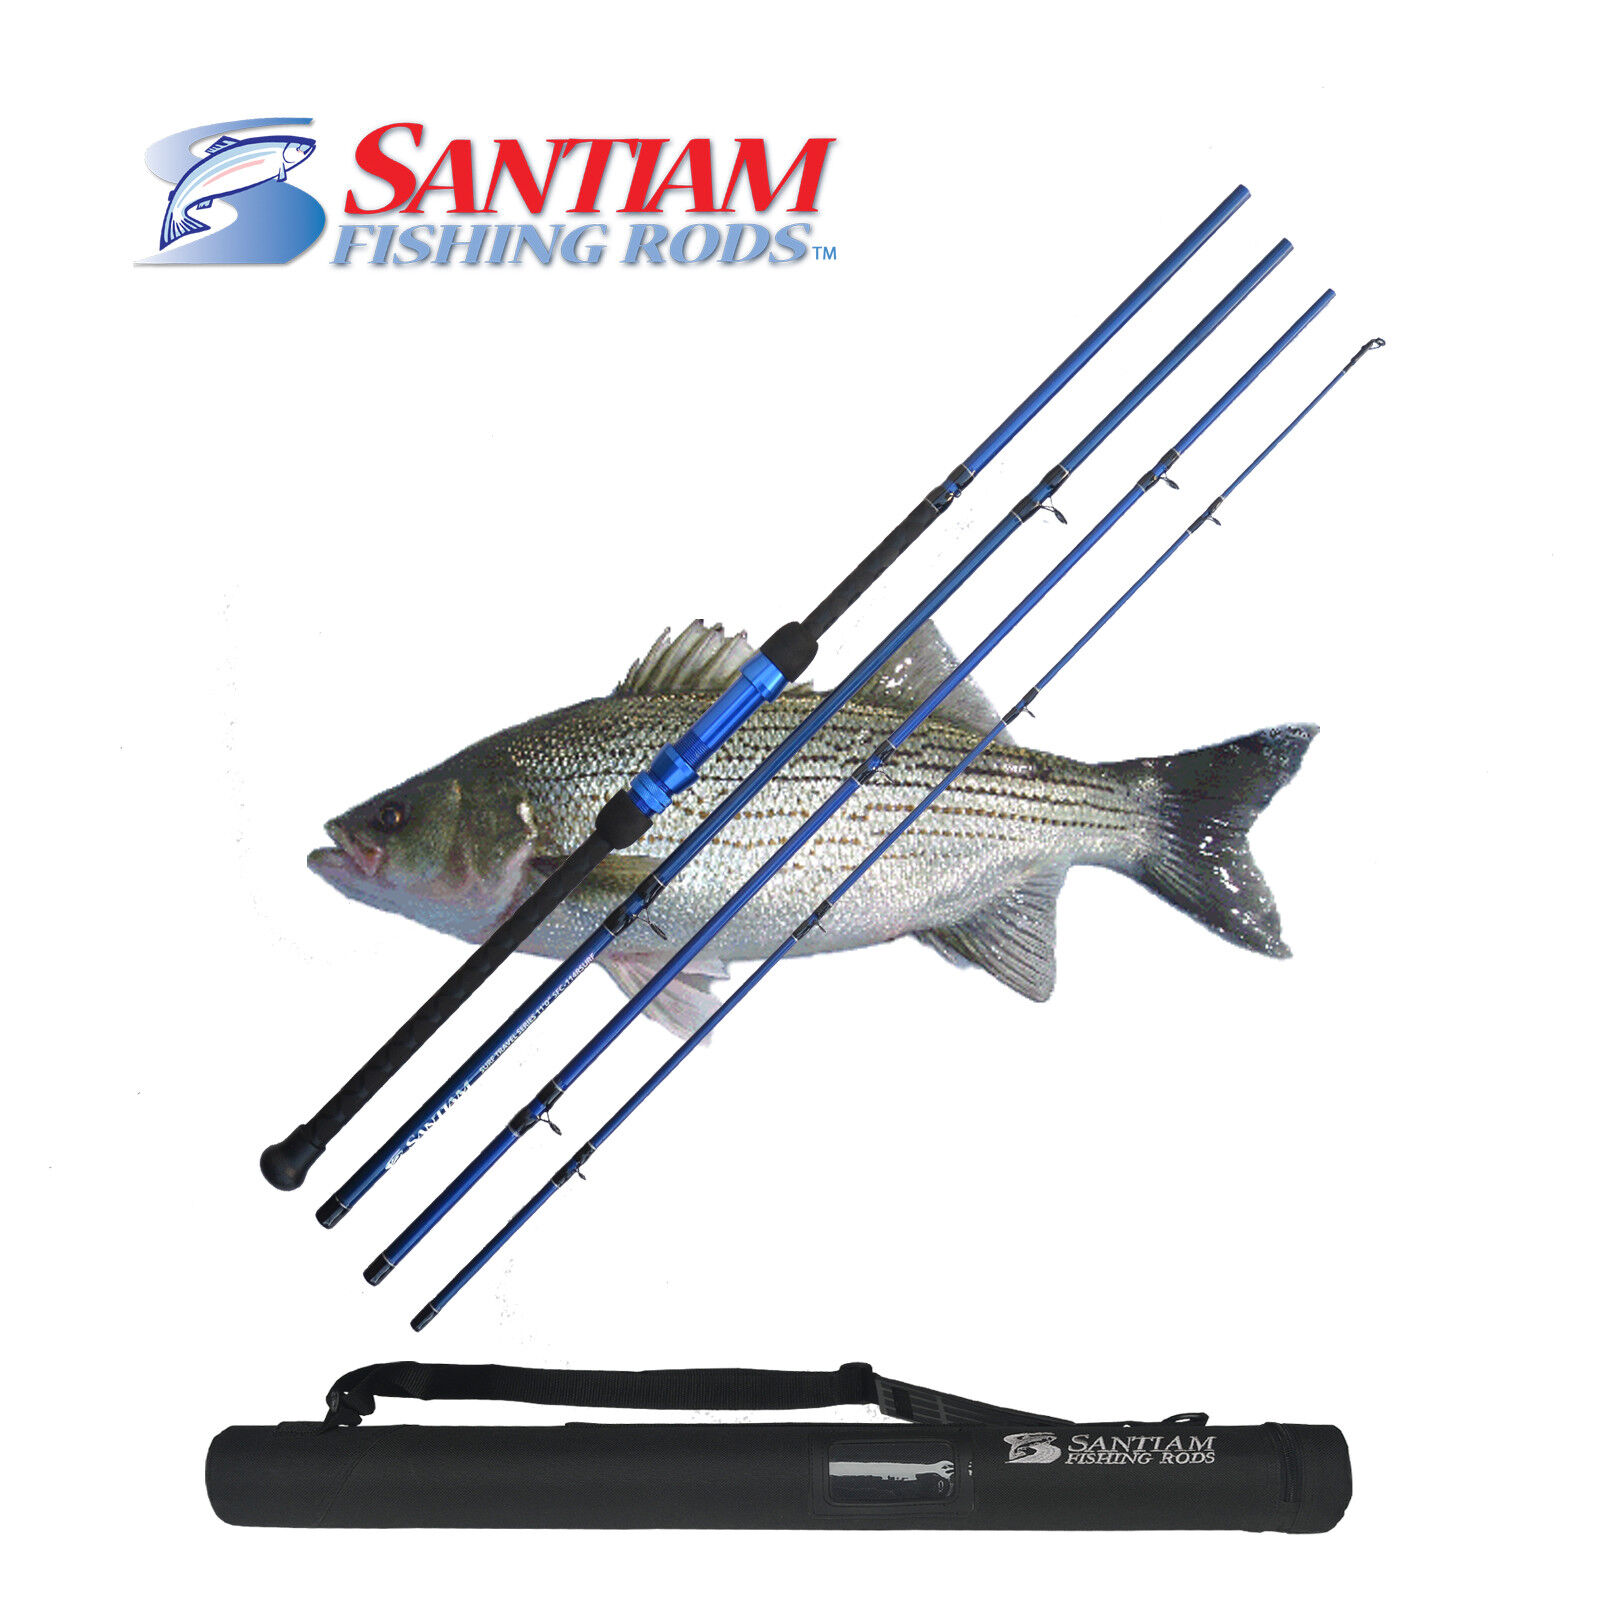 SANTIAM FISHING RODS 4 PC 11'0  17-40LB SURF  CASTING ROD ALASKAN TRAVEL SERIES  all in high quality and low price